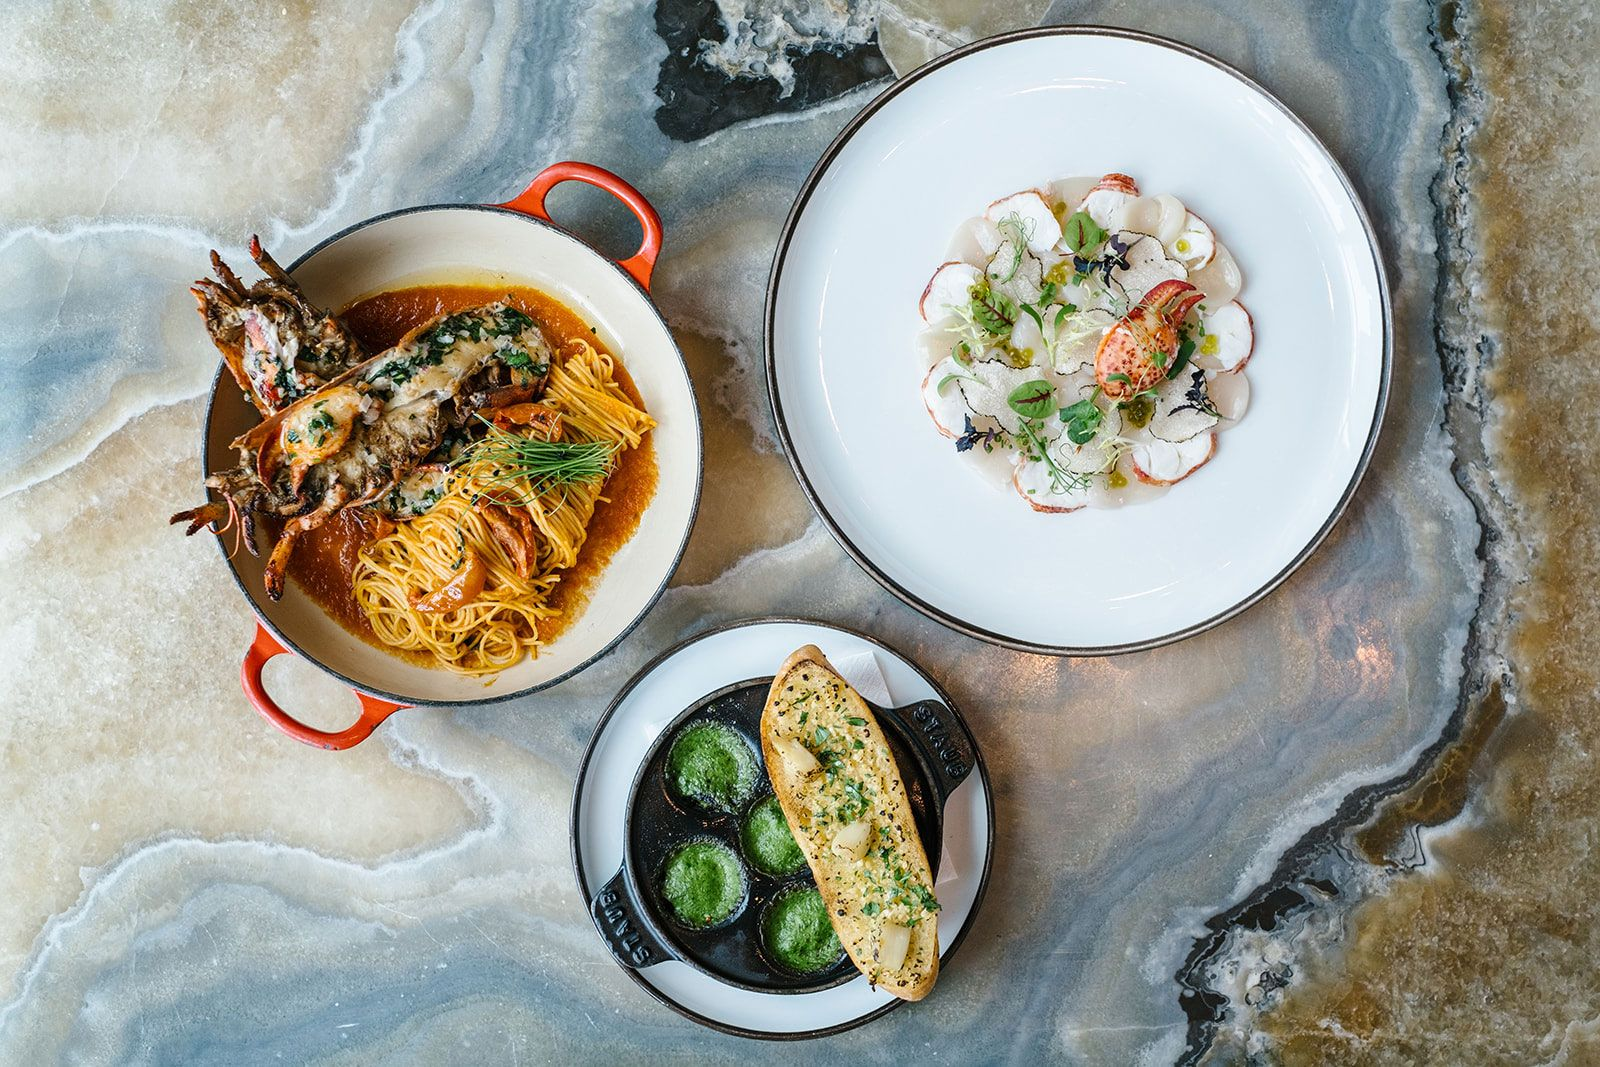 Where To Eat On National Day 2019: The Clifford Pier, Tien Court